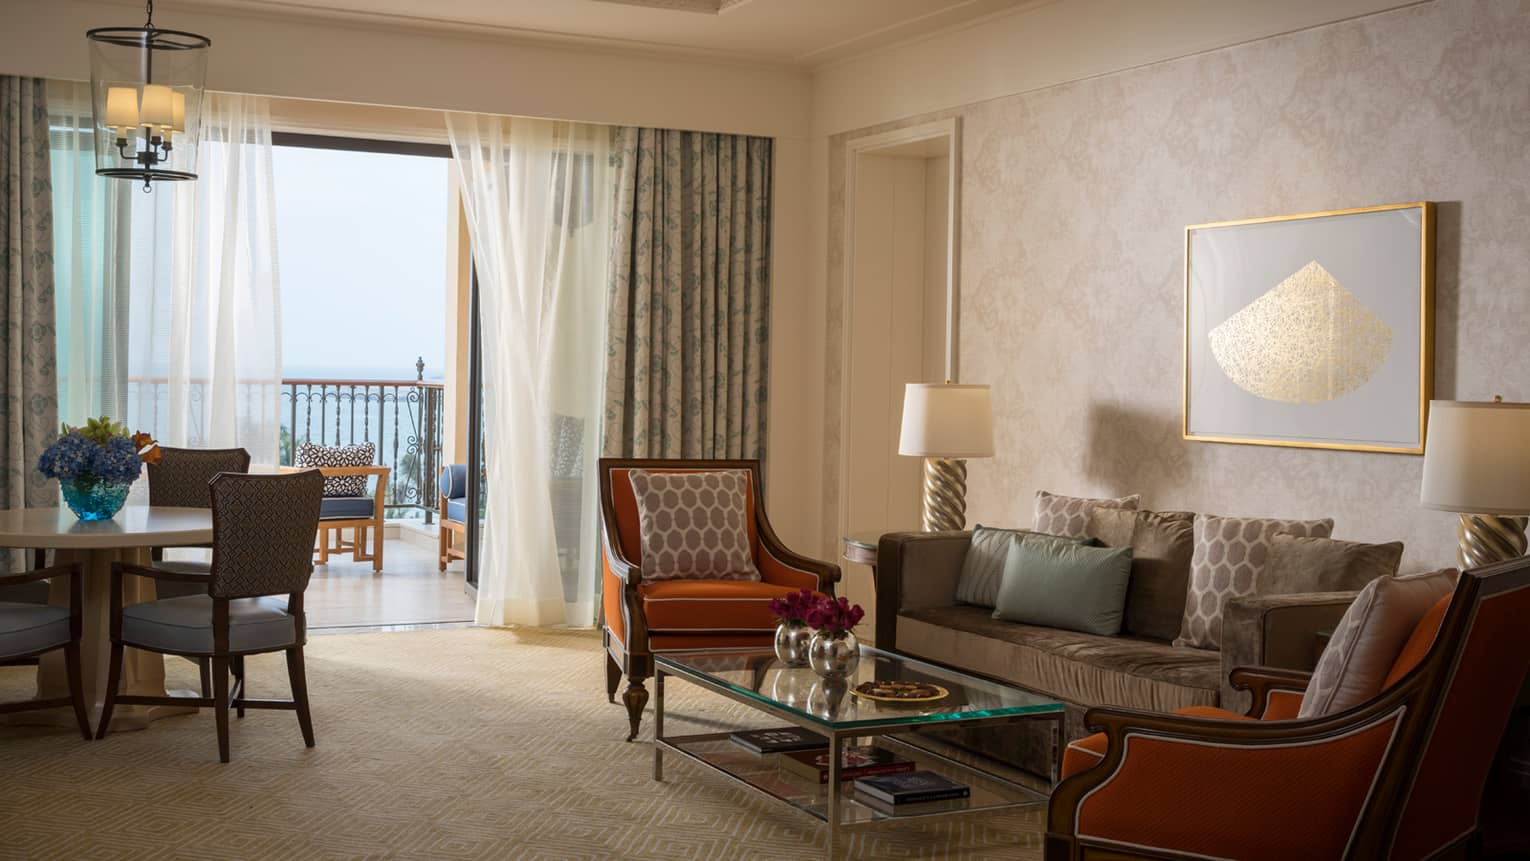 Jumeirah Sea-View Suite with large living space, orange and gold accents, white curtains